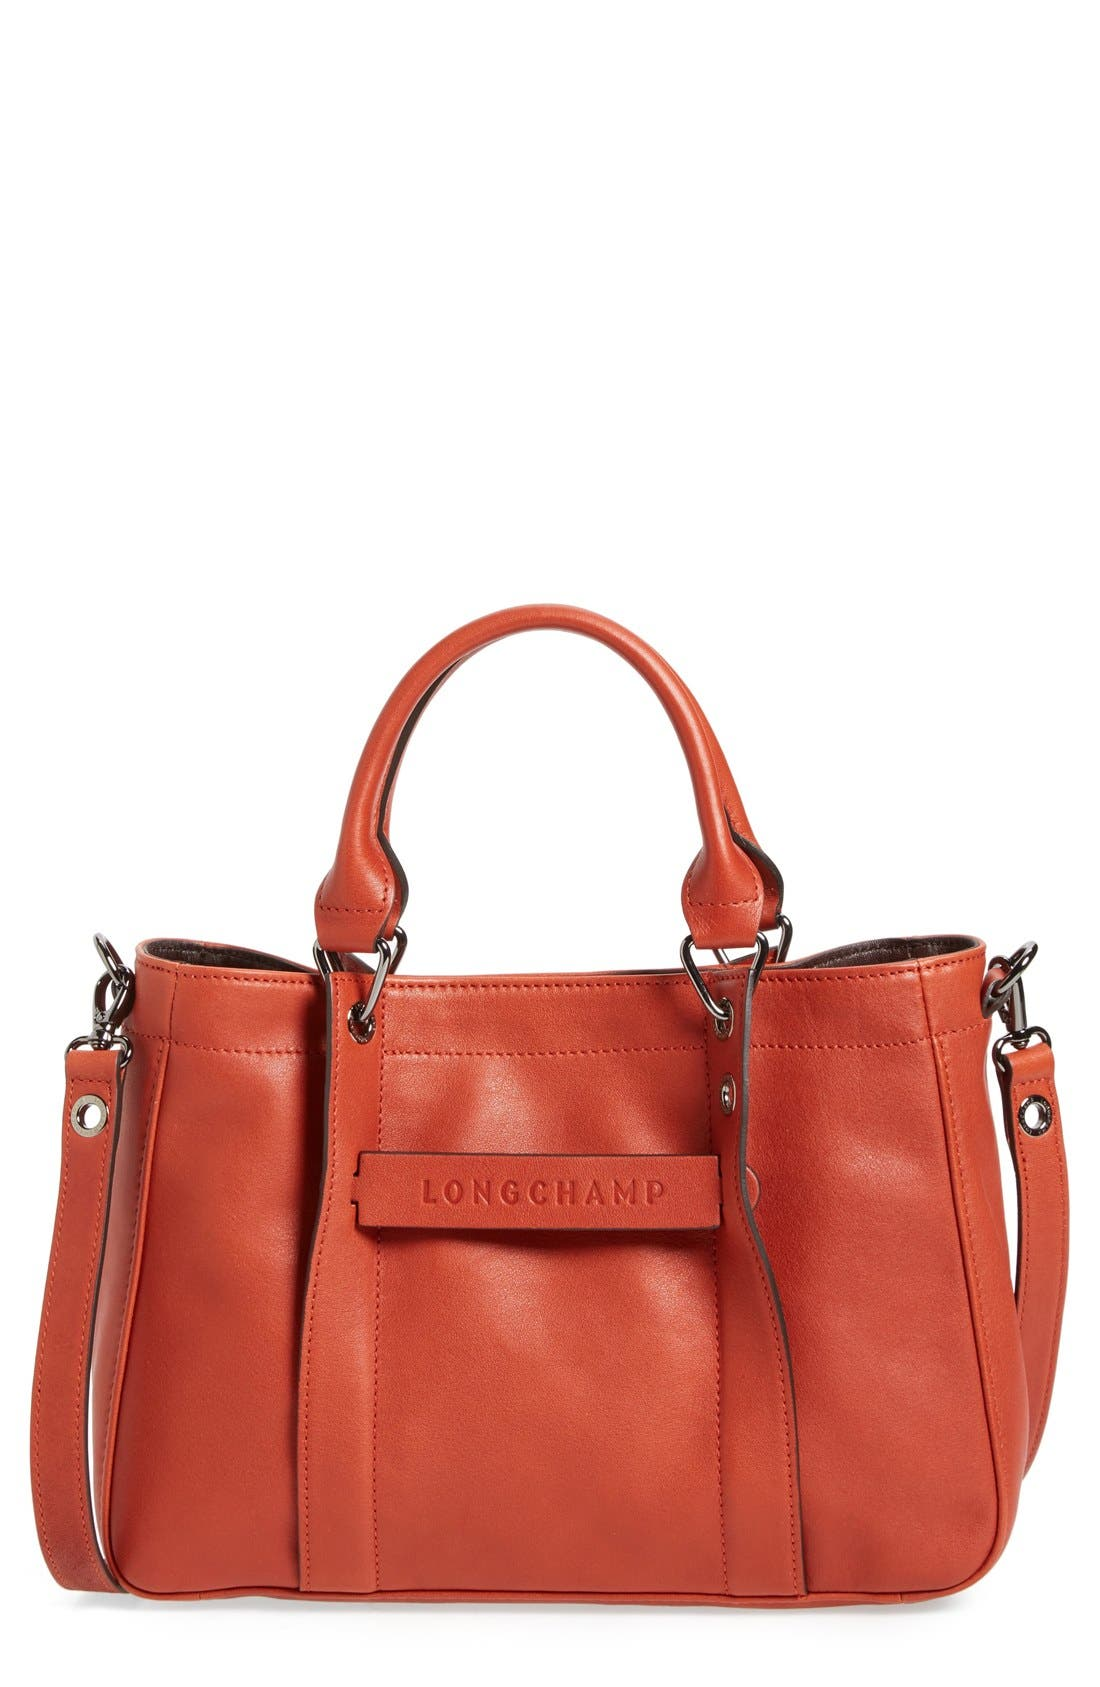 LONGCHAMP Small 3D Leather Tote